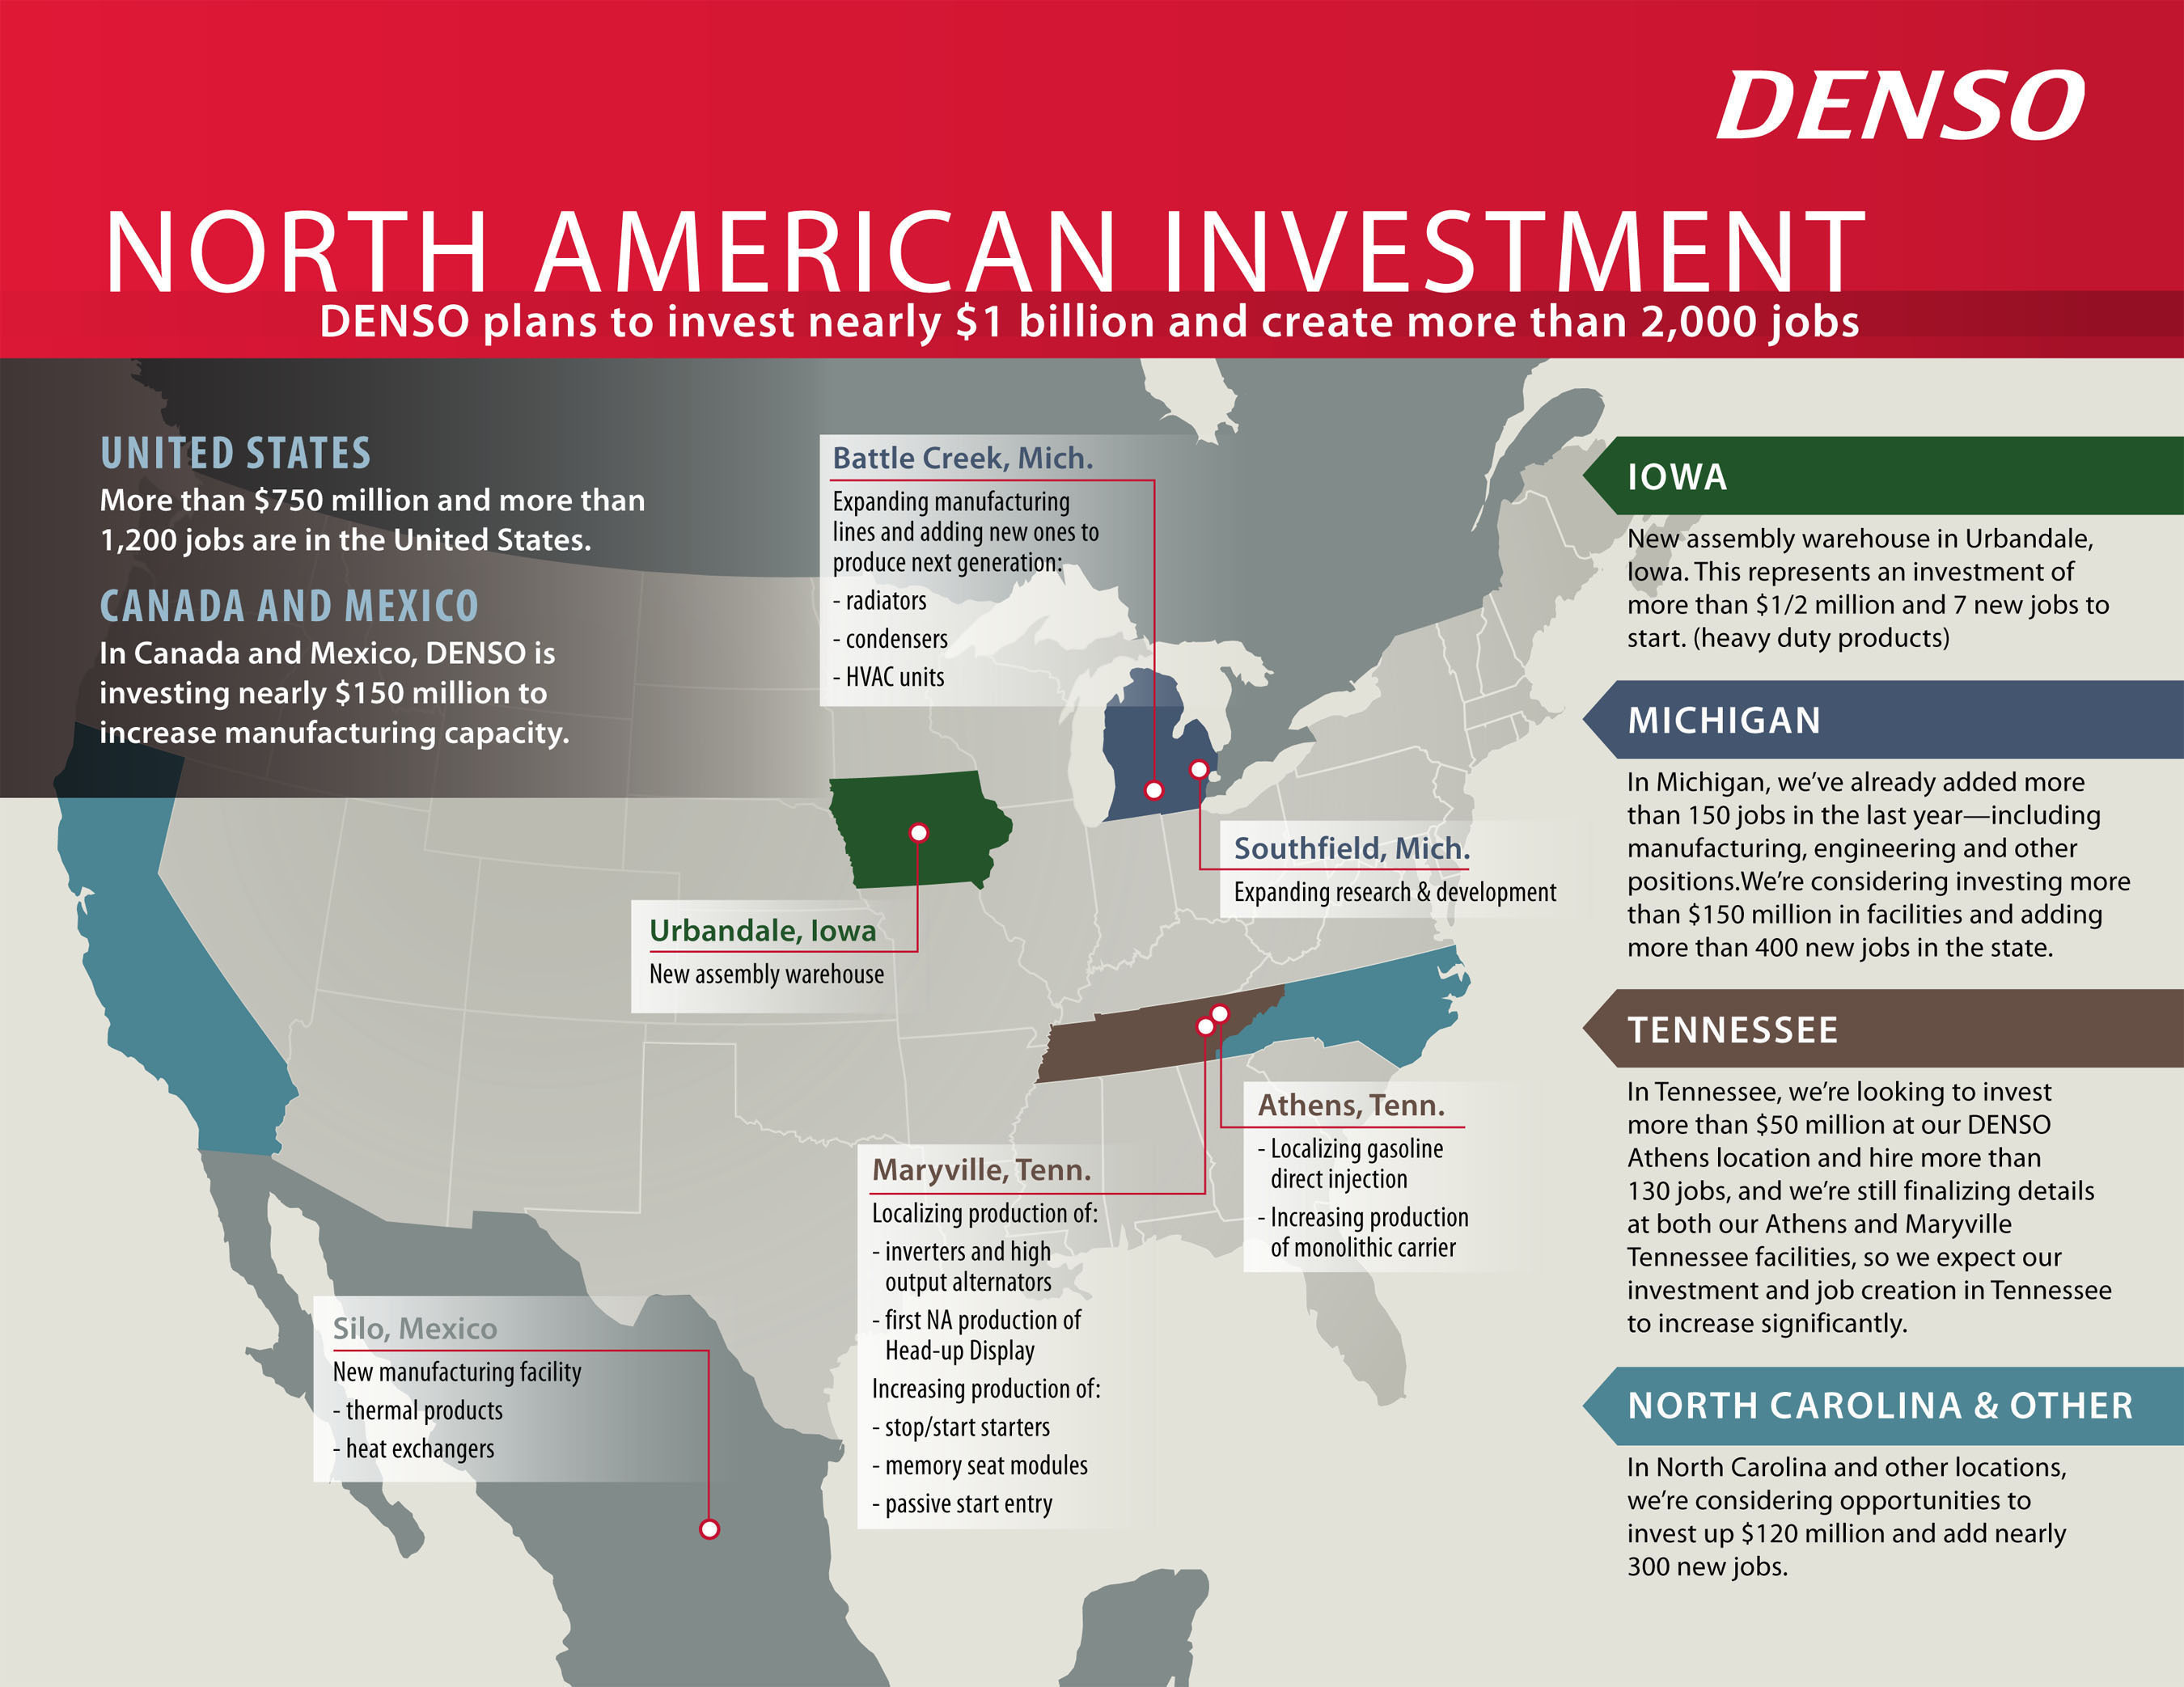 DENSO to Invest Nearly $1 Billion in North America Over Next Four Years